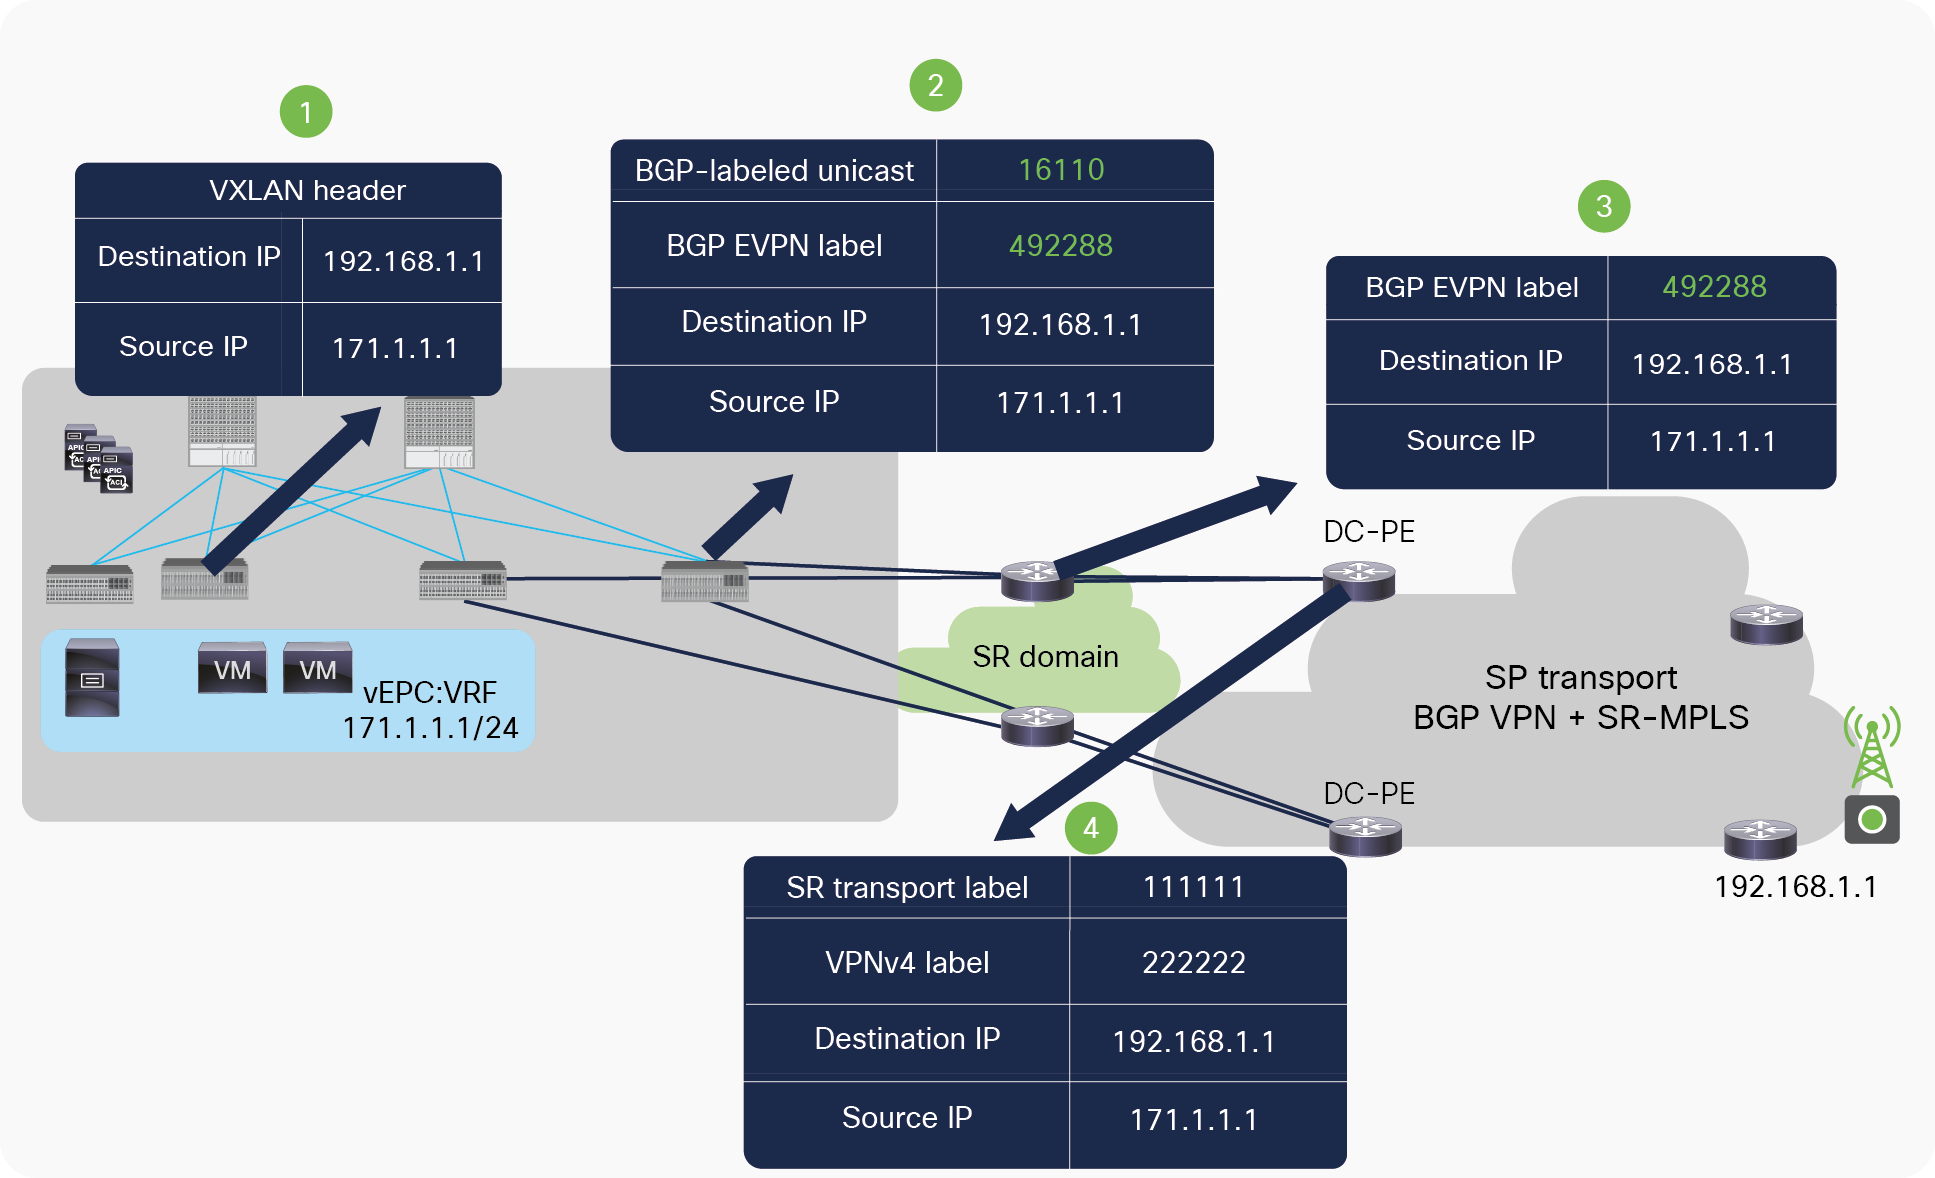 Packet flow from ACI fabric to DC-PE across SR-MPLS network